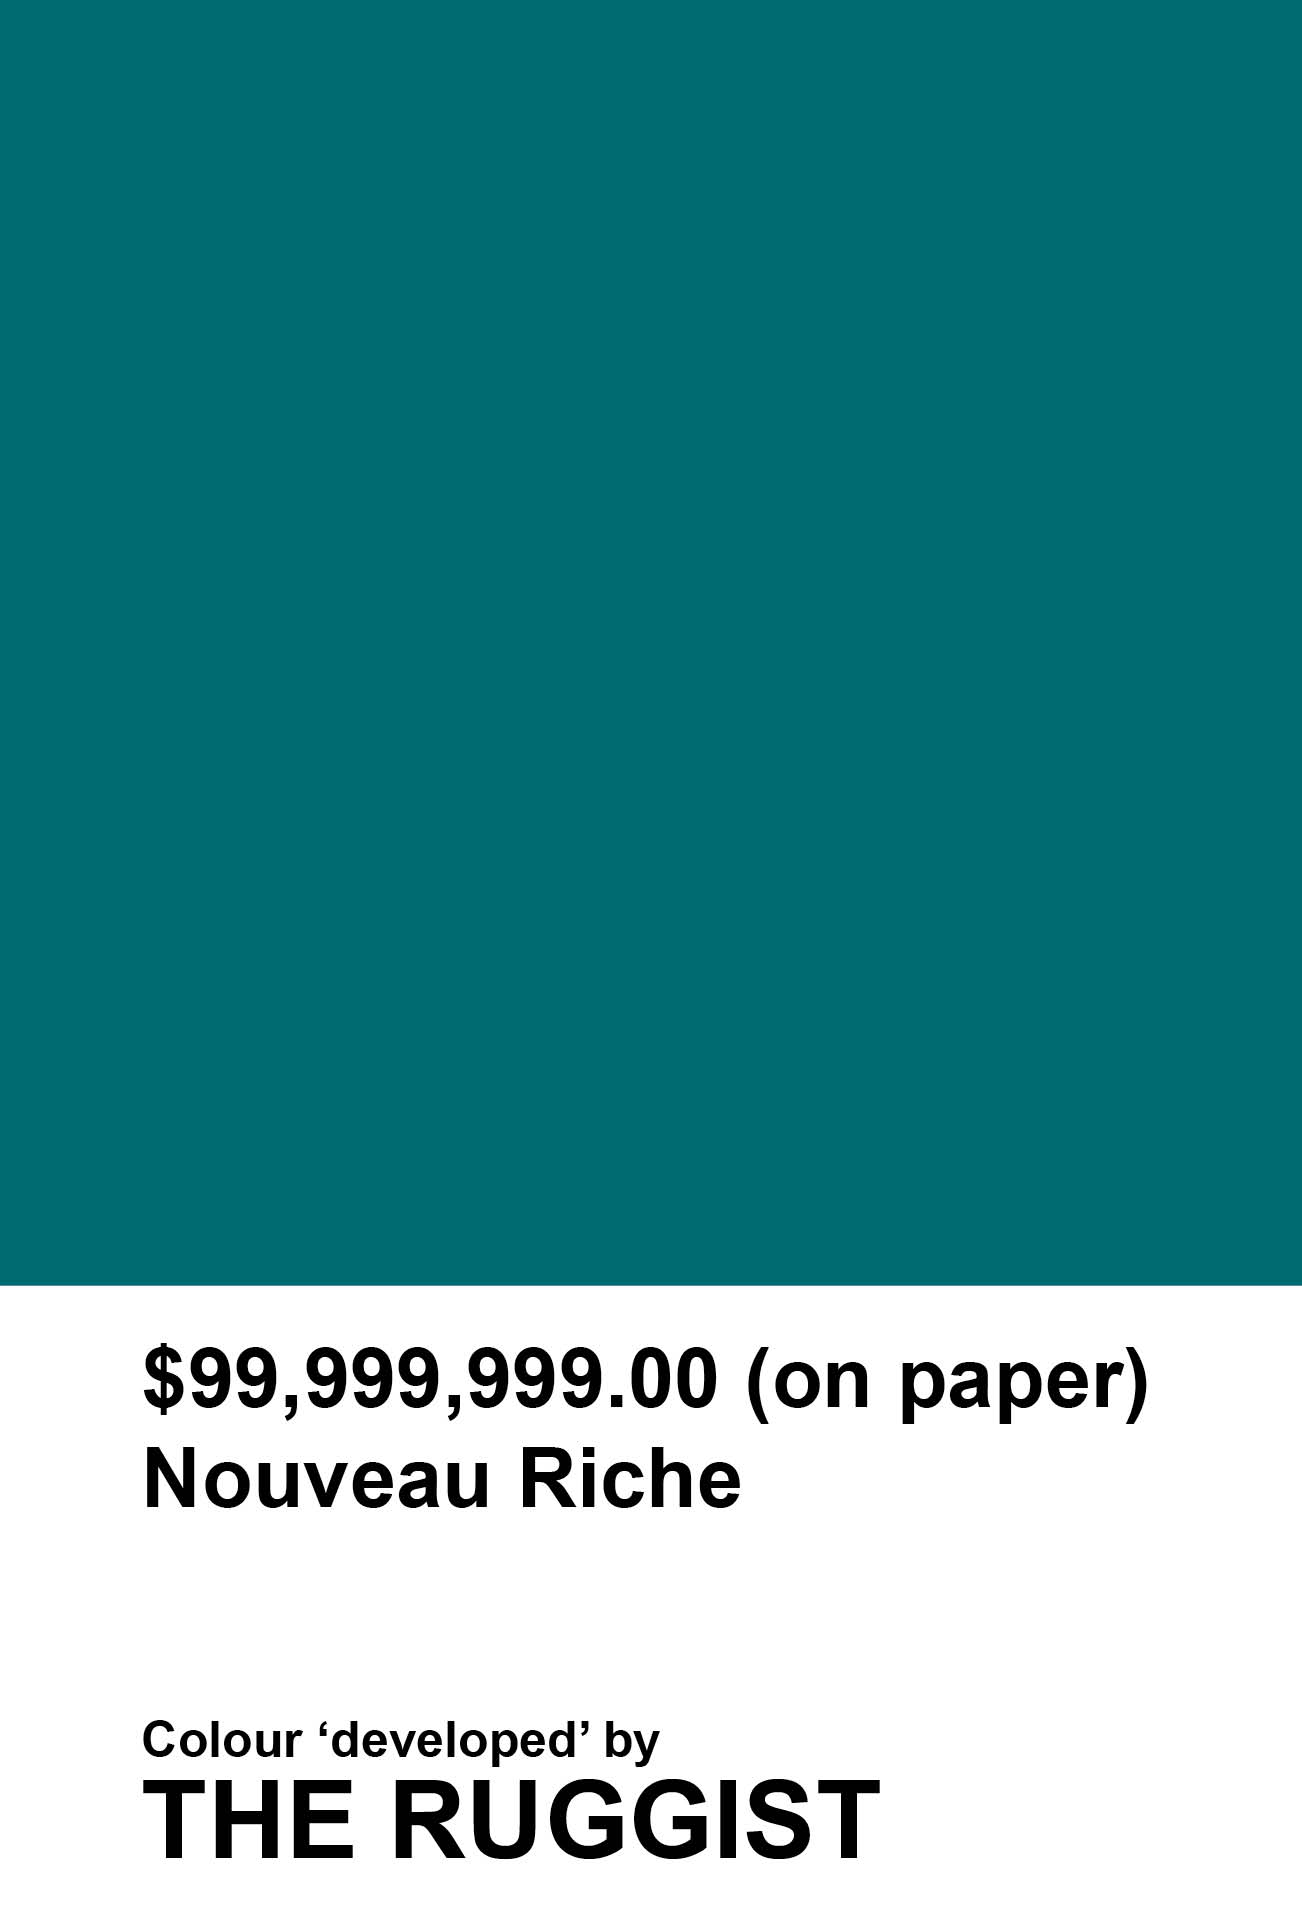 'Nouveau Riche' colour reference as 'developed' by The Ruggist. | Image by The Ruggist.